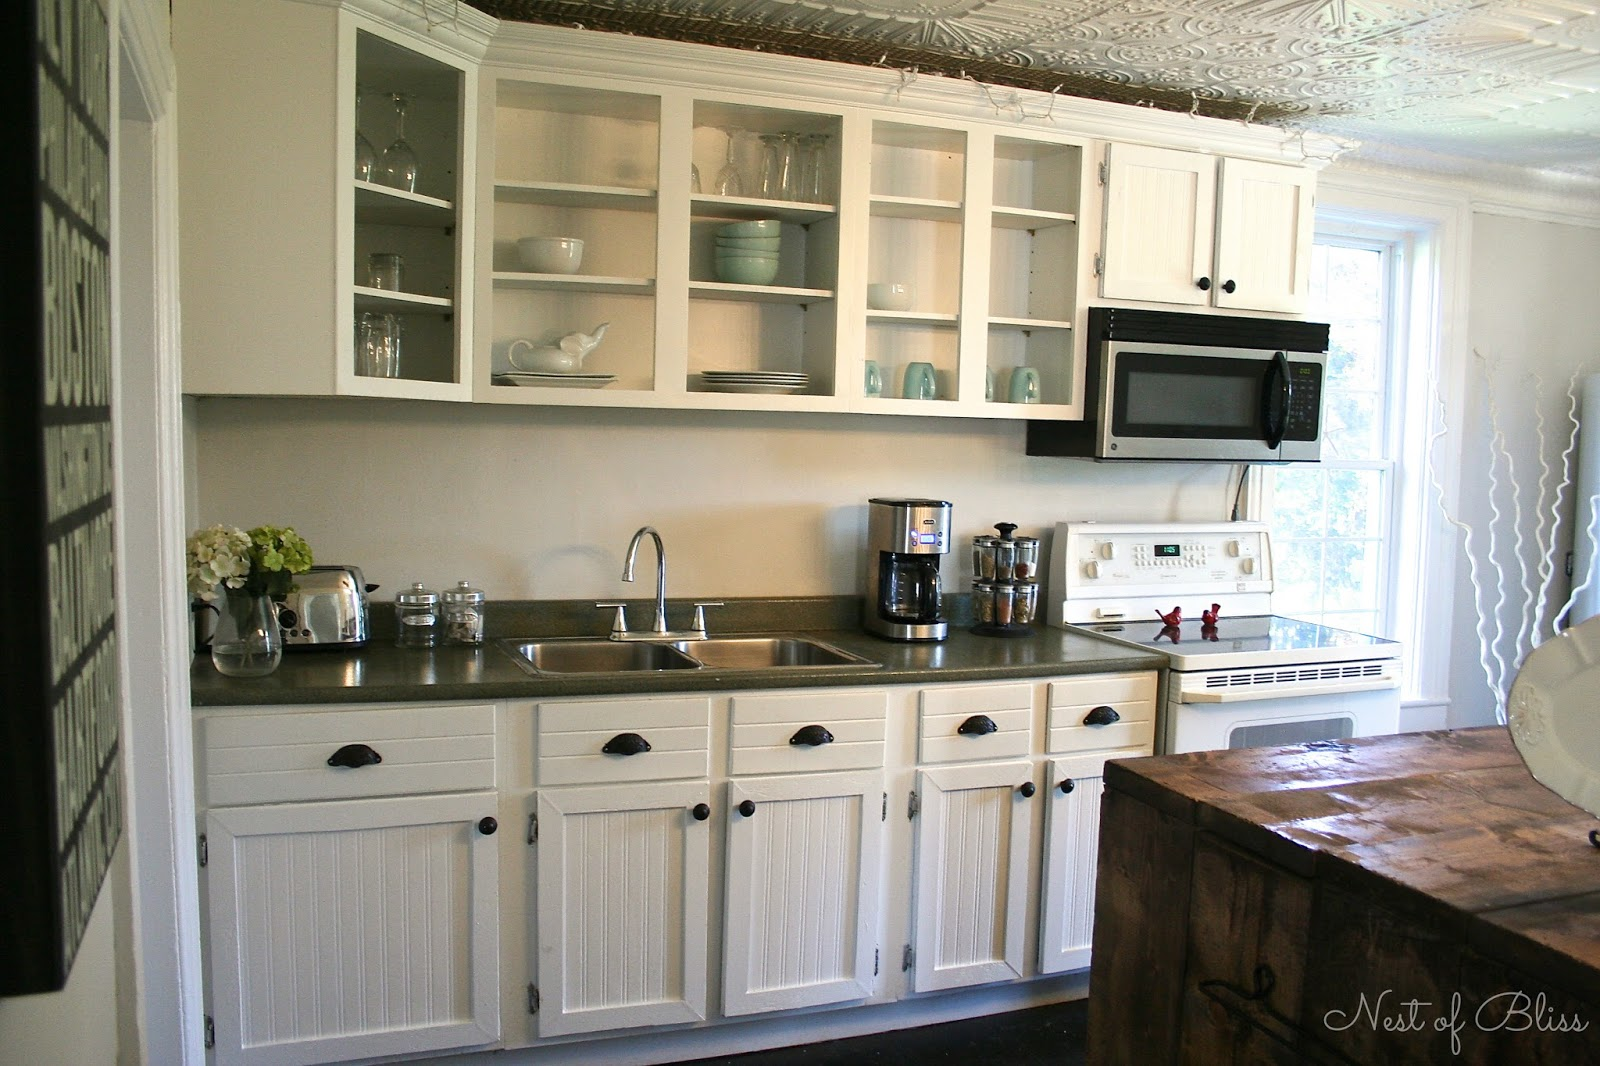 Kitchen Cabinet Renovation Kitchen Renovation Makeover Progress Before And After